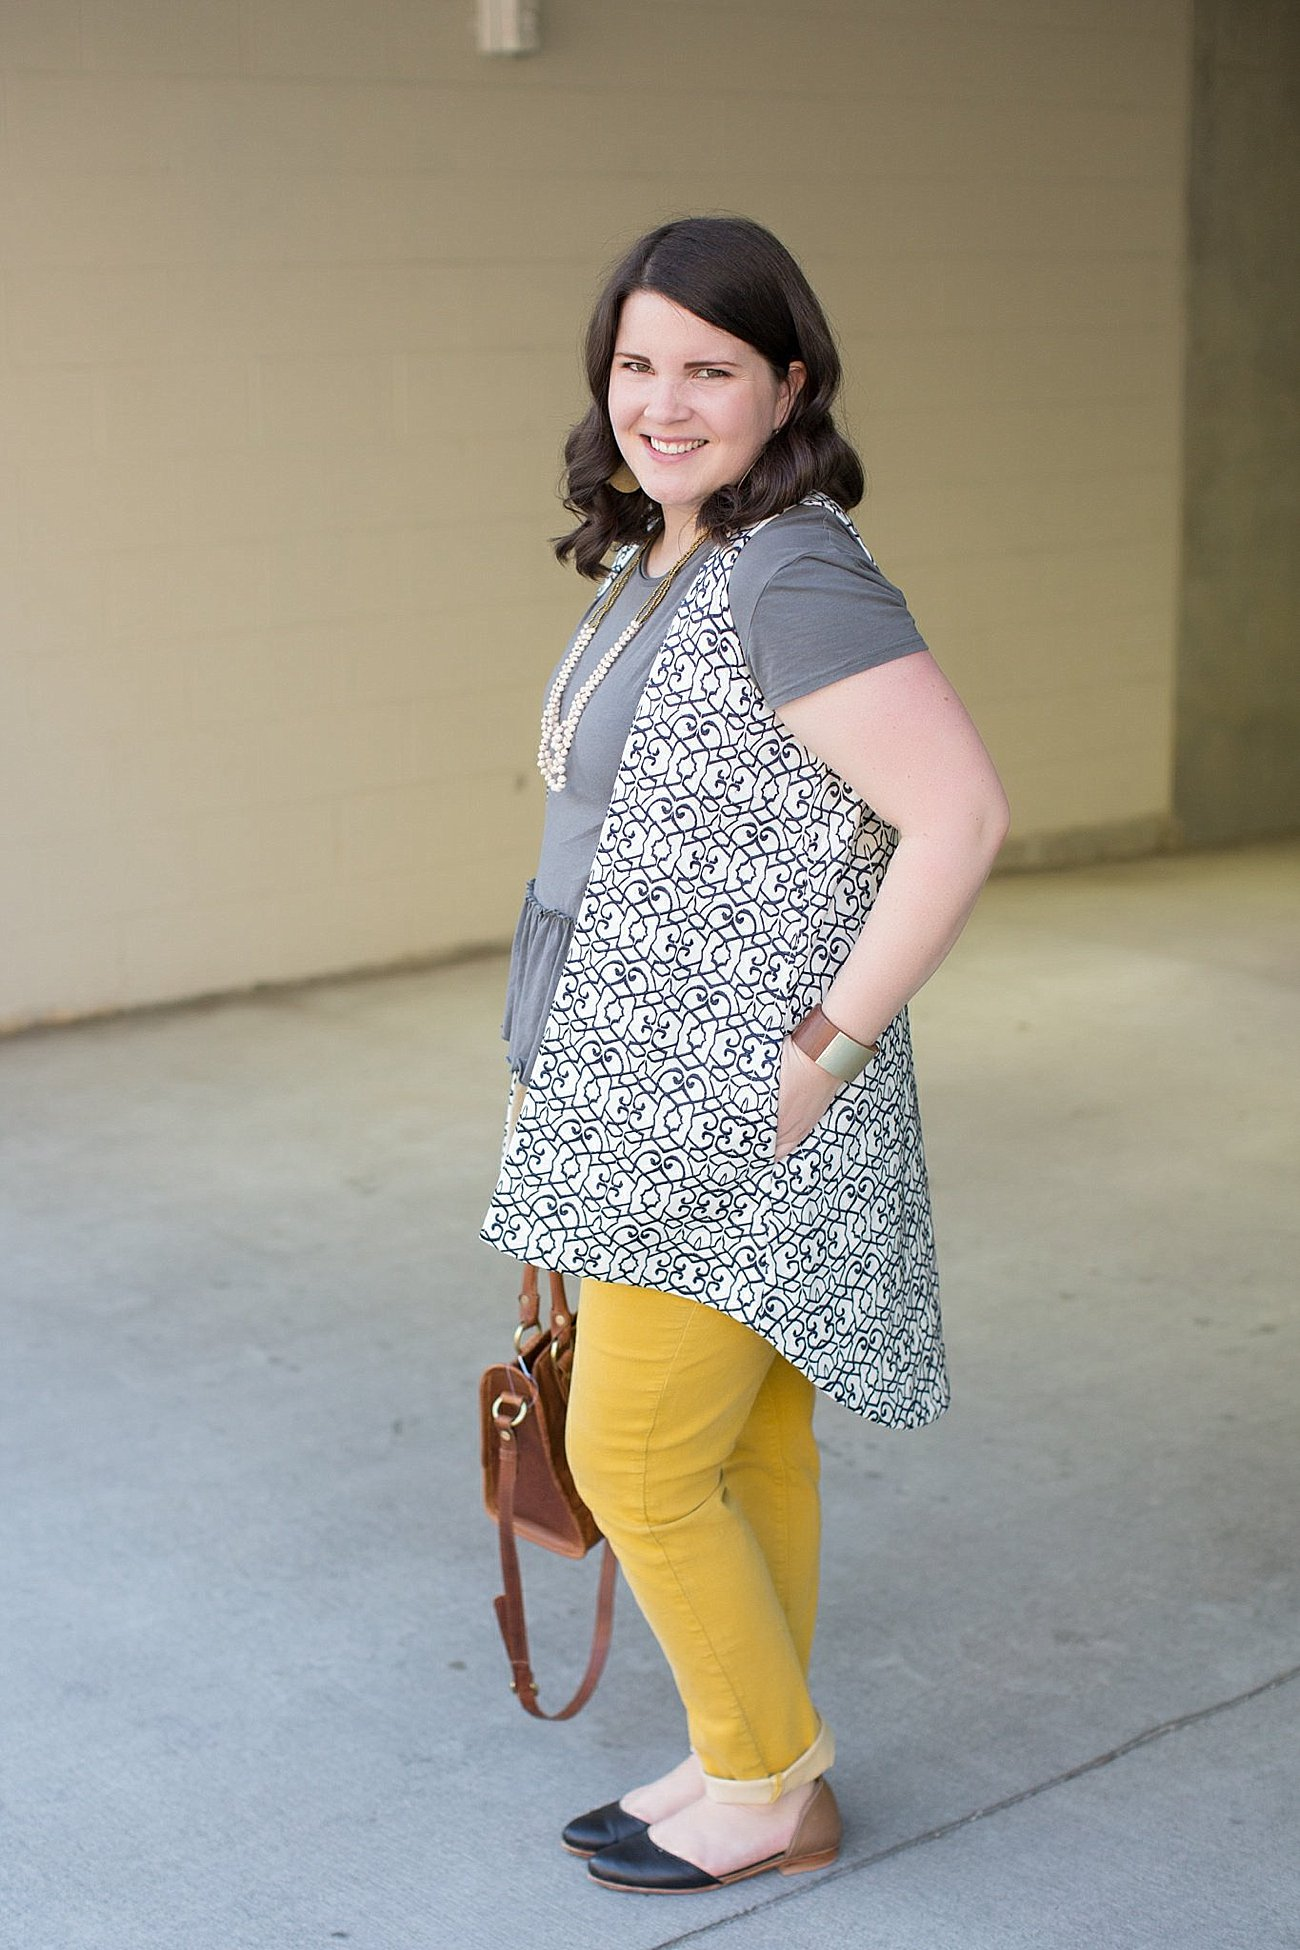 It's More Than a Tee - Elegantees Ethical Fashion by fashion blogger Still Being Molly